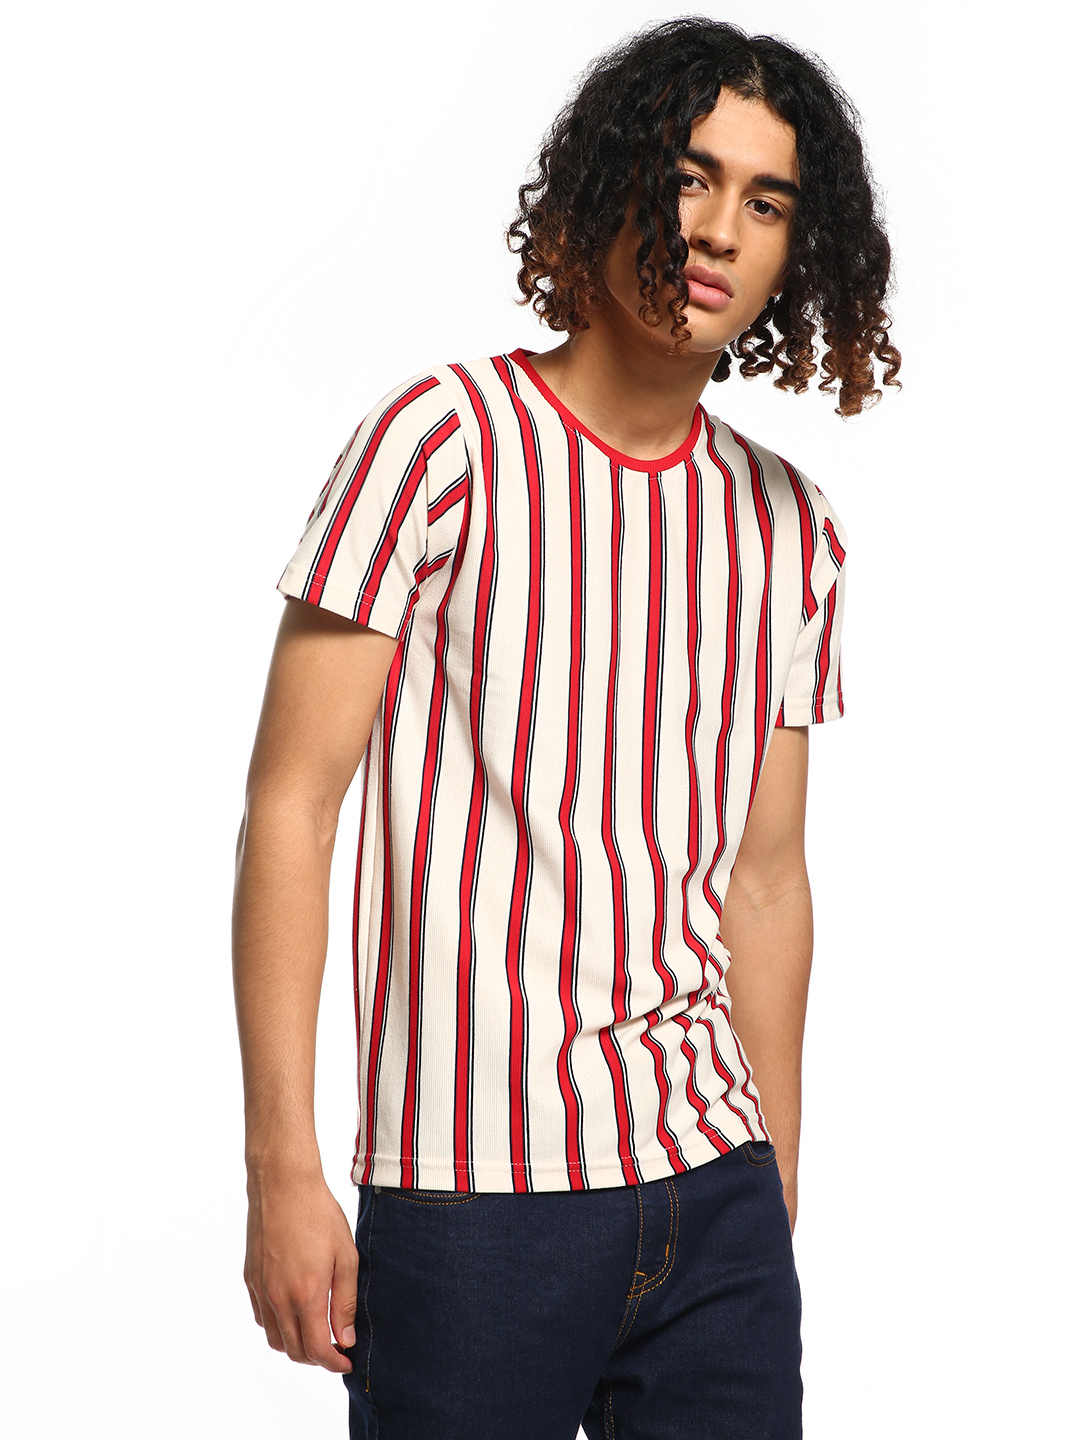 Deezeno Multi Vertical Stripe Print T-Shirt 1